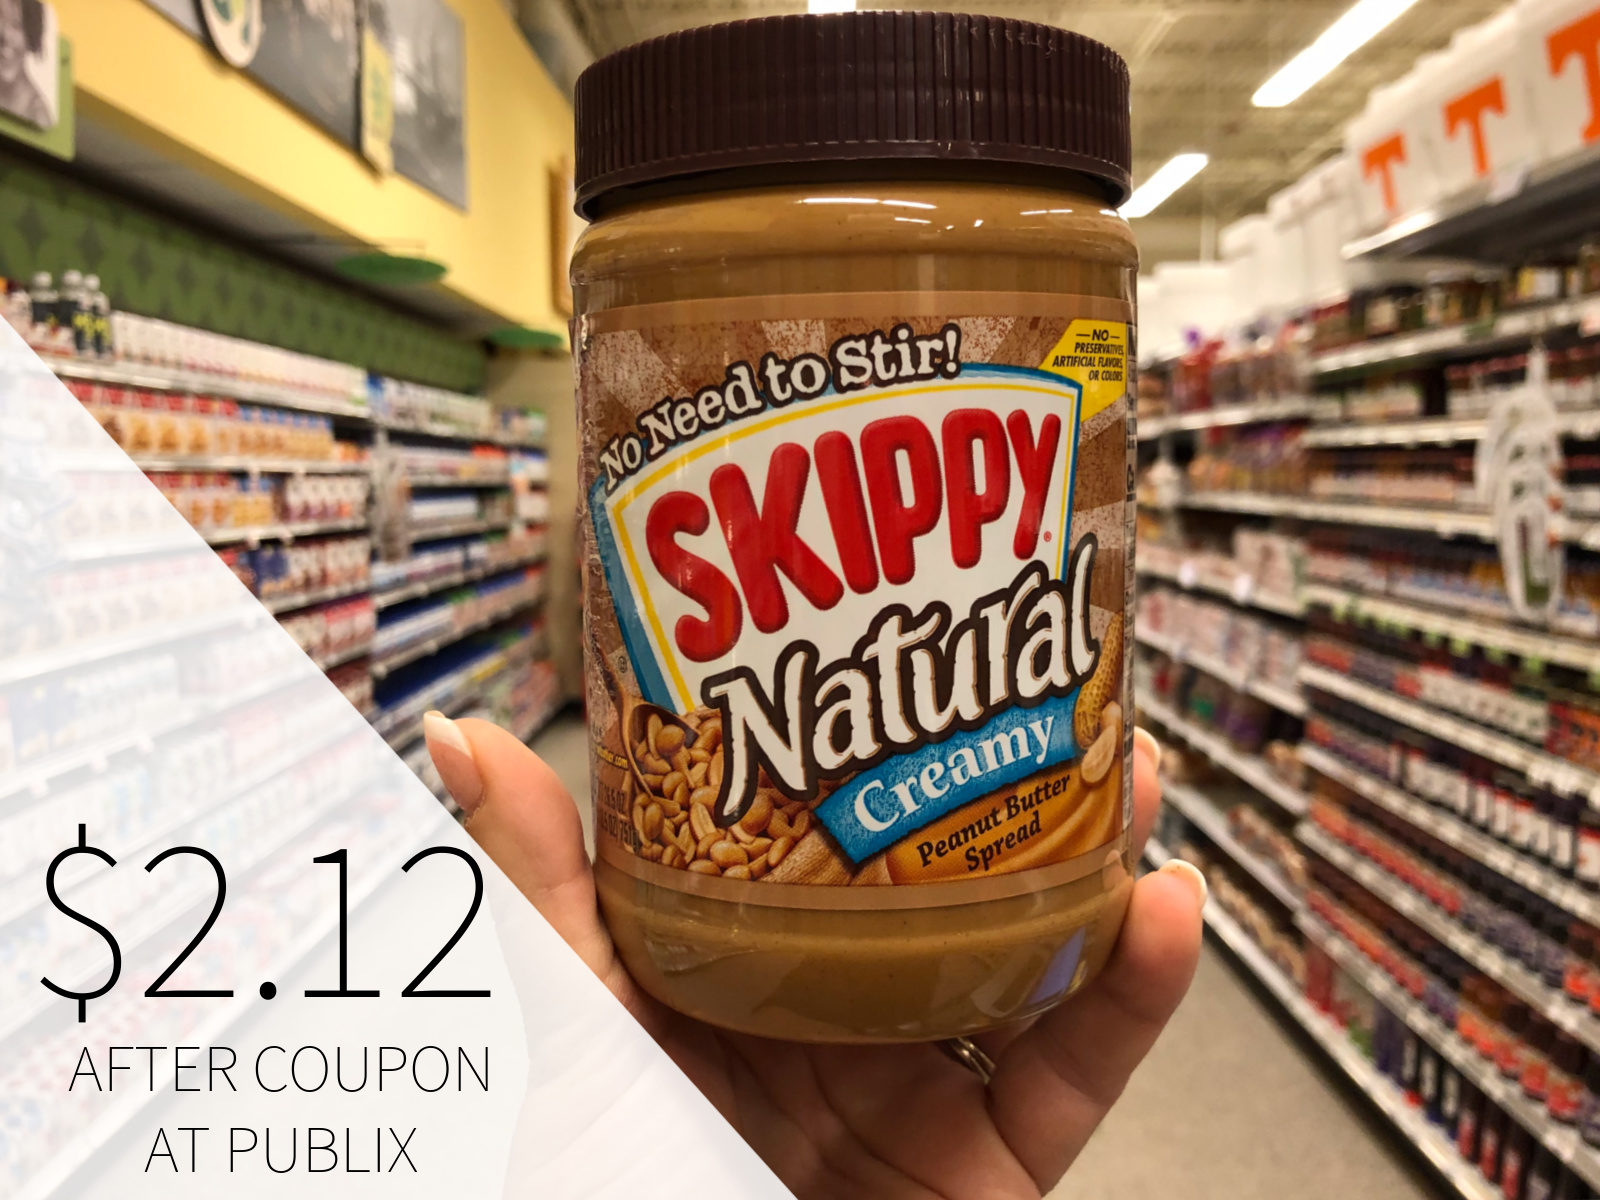 Big Jars Of Skippy Peanut Butter As Low As $2.22 At Publix on I Heart Publix